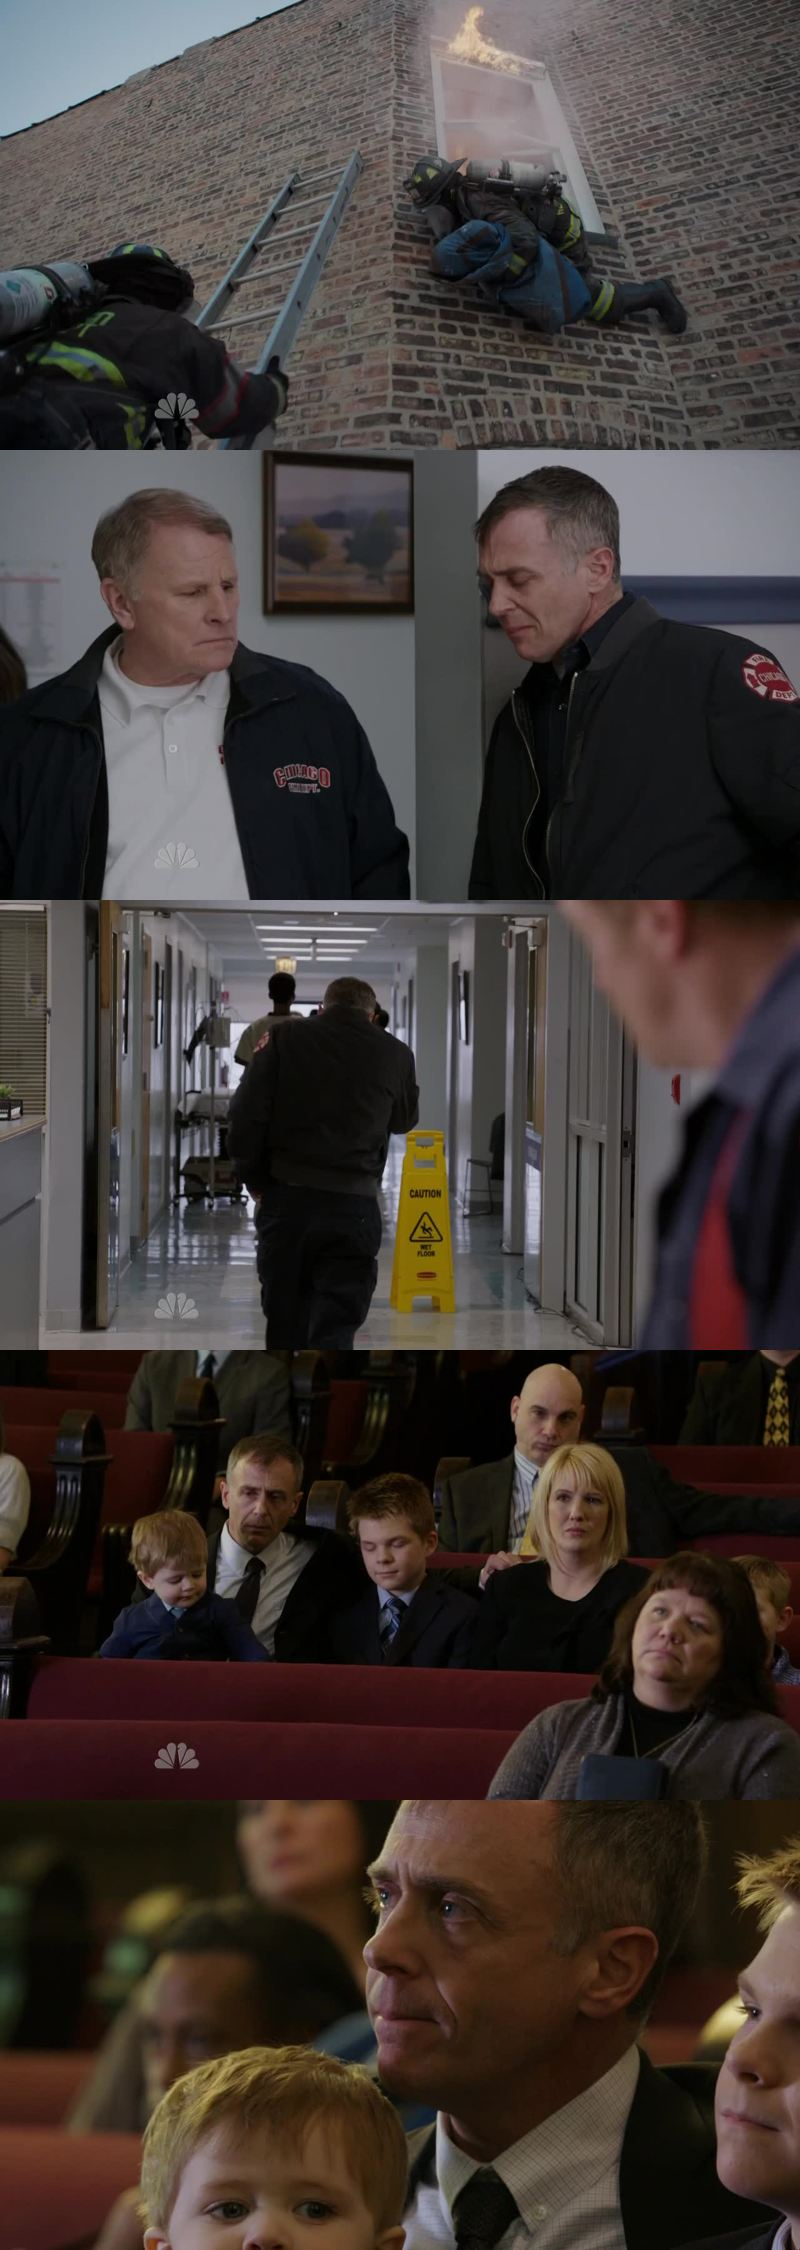 Wow... Christopher Herrmann sure knows how to be protective and kind ! He's one of the best characters in this show. He puts a lot of heart in his job. This cade was heartbreaking and sad. I can't even imagine the way Herrmann felt as a father.   Casey always got his team's back, and he's a great lieutenant for that !   I'm not sure what to think about Otis and Sylvie, except that Otis should definitely be careful. Something tells me that this story is not over...   Kelly is back on his feet, and I kind of like the new girl - even if I know that we only see her because of Chicago Med !